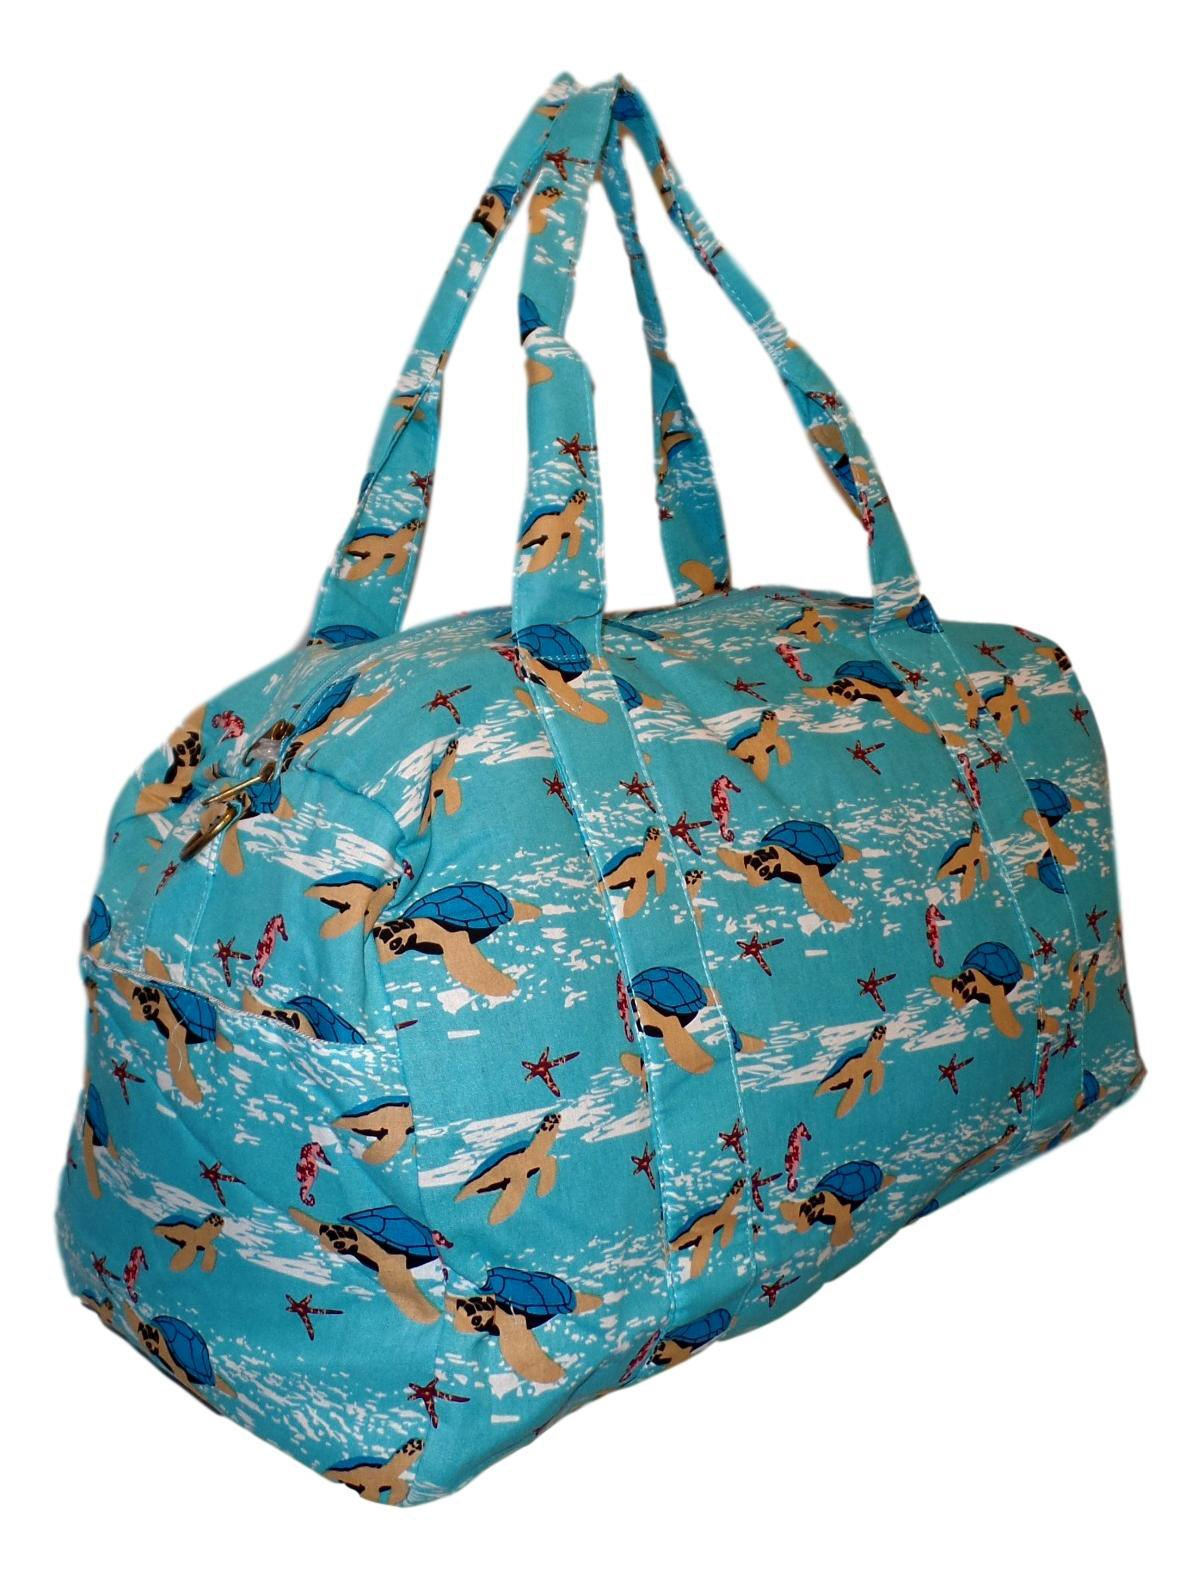 Sona G Designs - Overnighter Large Travel Duffle Duffel Bag - Monogram Personalization Available (Aqua Sea with Turtles)